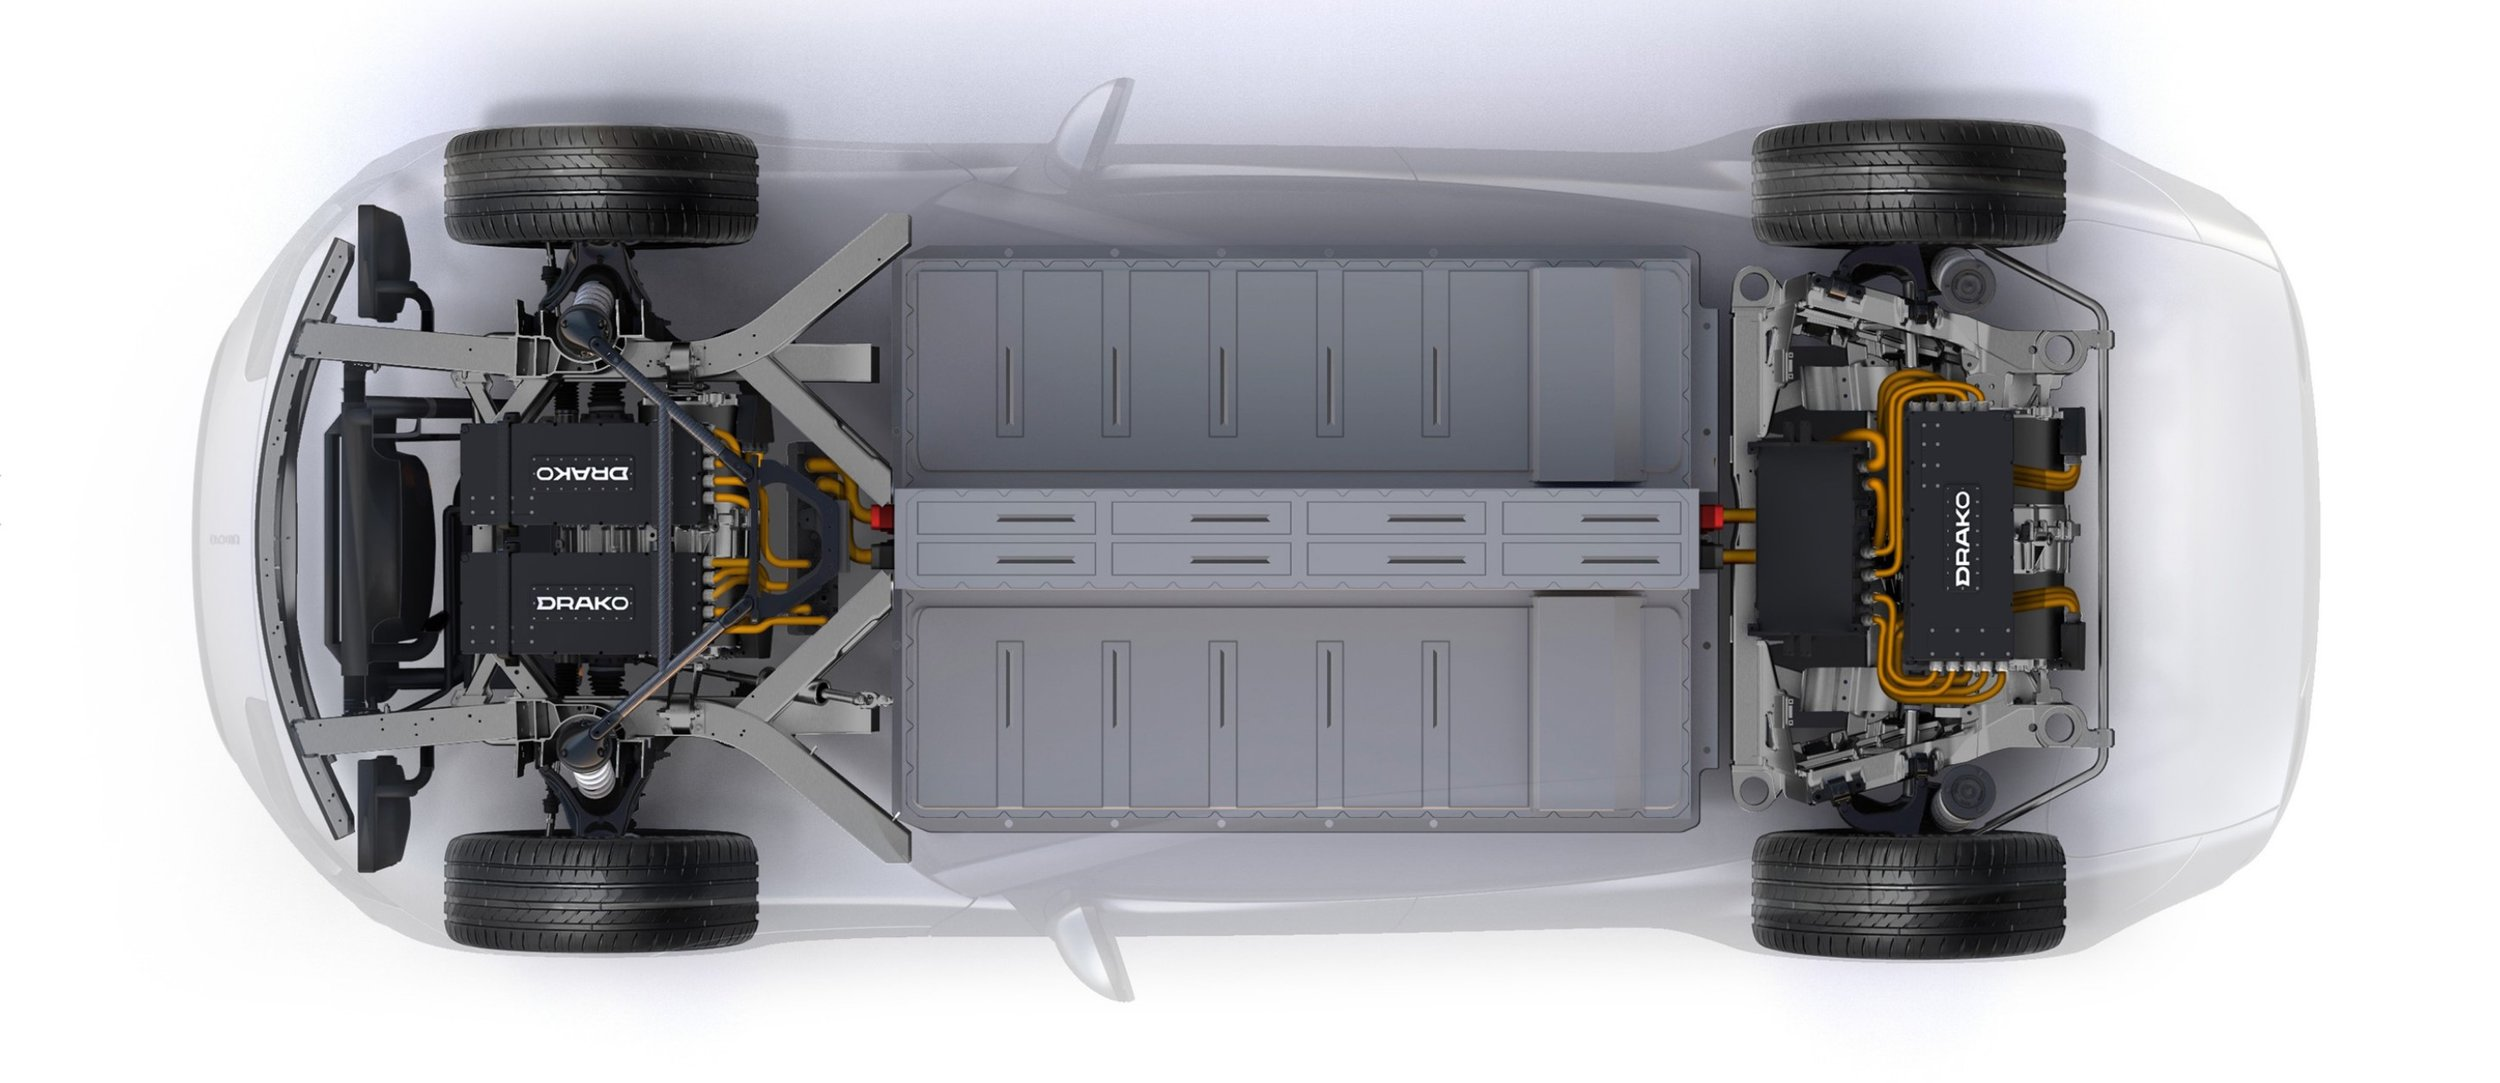 4 electric engines allow unparalleled power and control